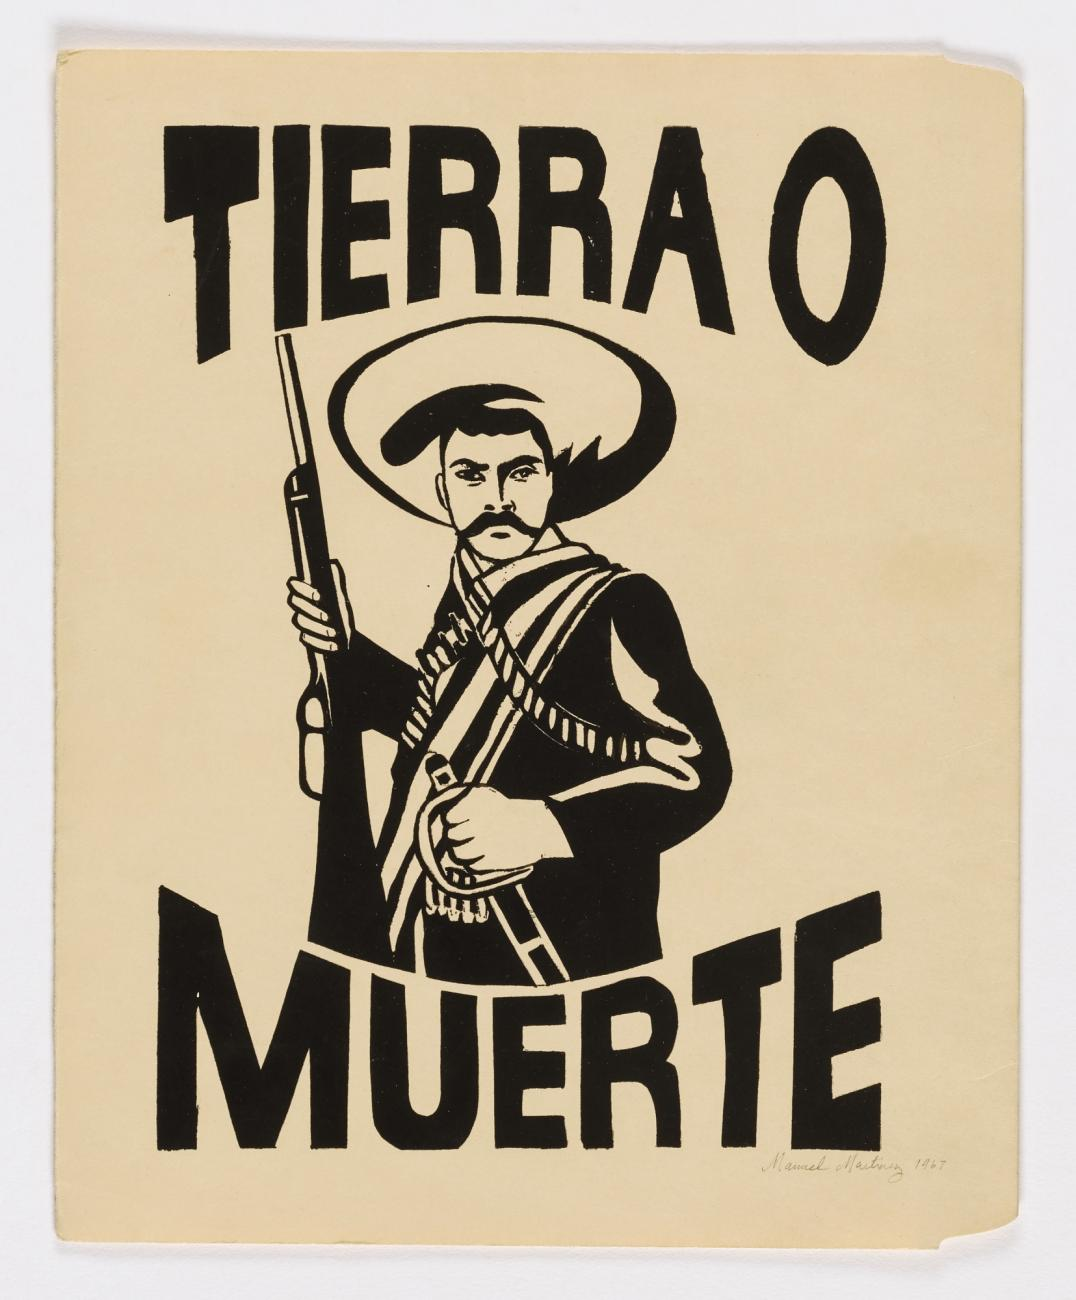 Black and white print of a Mexican Revolutionary.